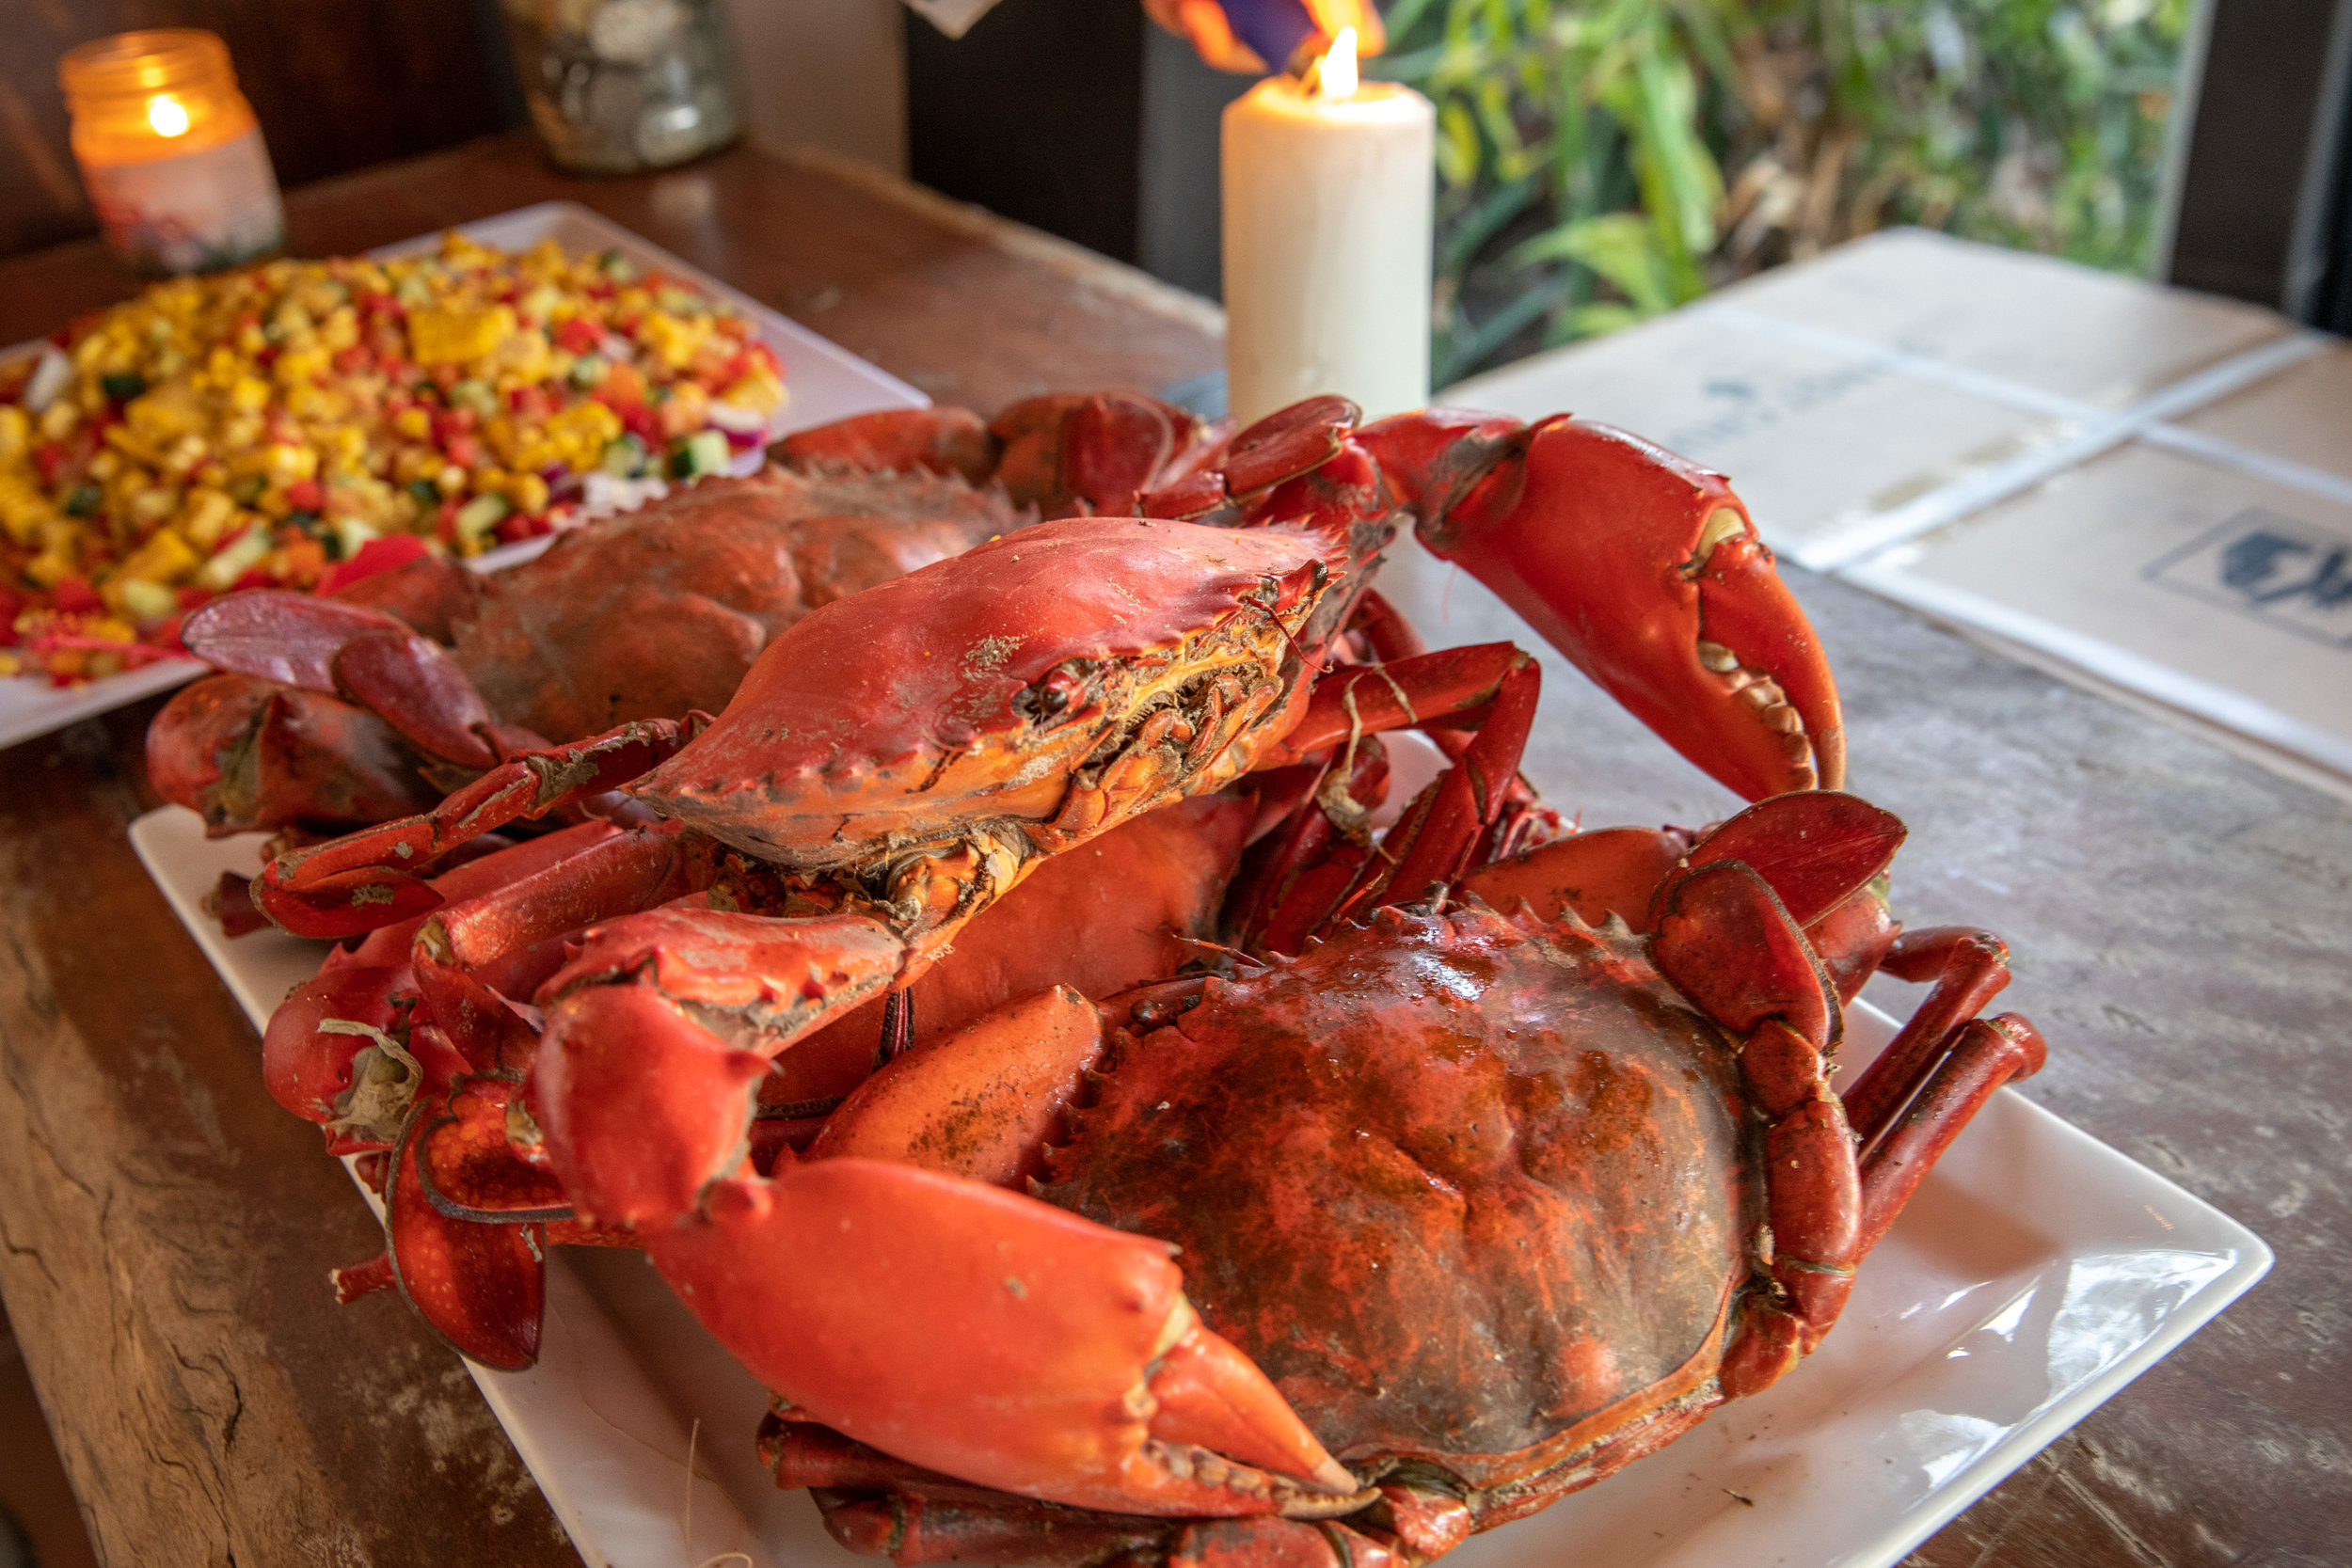 Love seafood? - Let our cook prepare your days catch or leisurely dine on locally caught seafood.